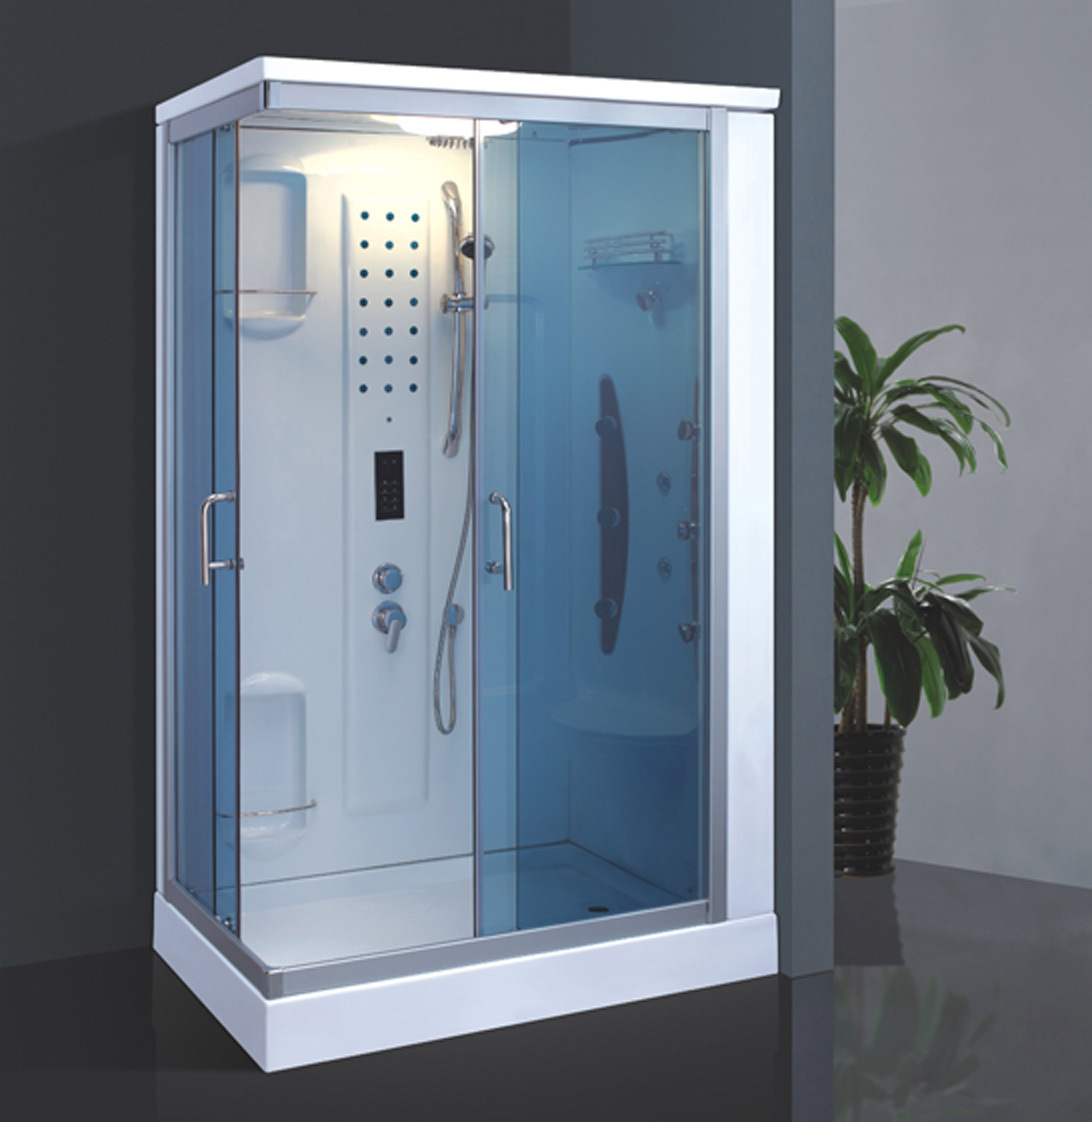 China Steam Bath Shower Cubicle, Steam Bath Shower Cubicle ...